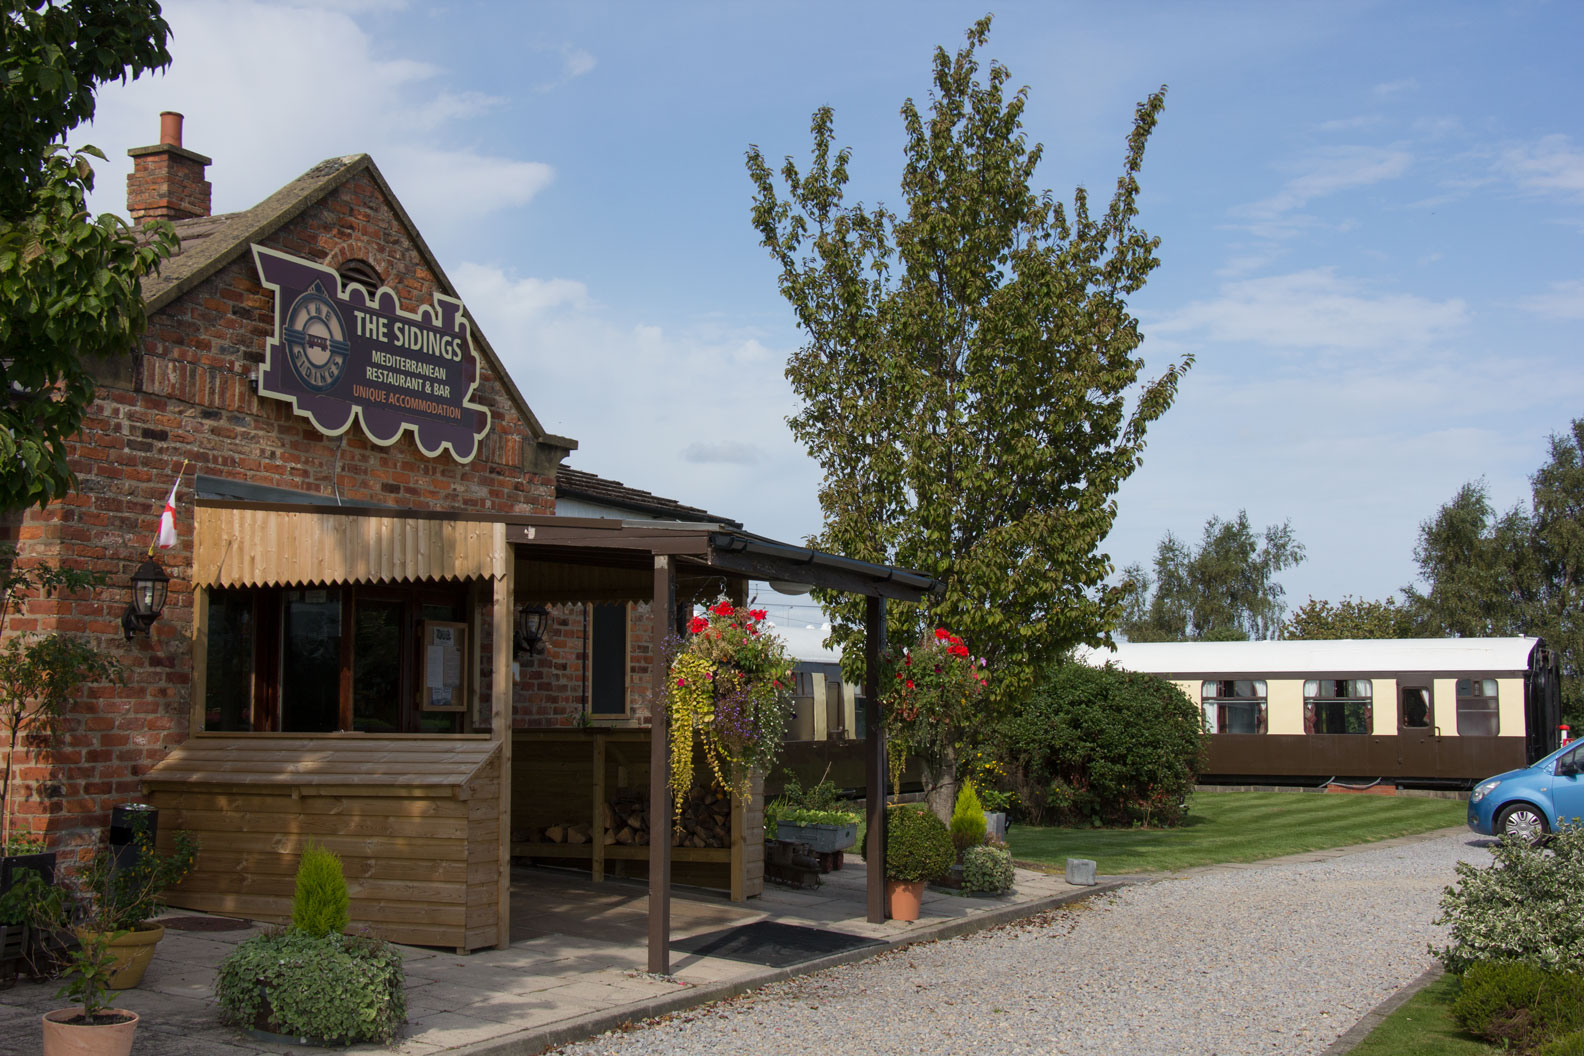 The Sidings hotel and restaurant